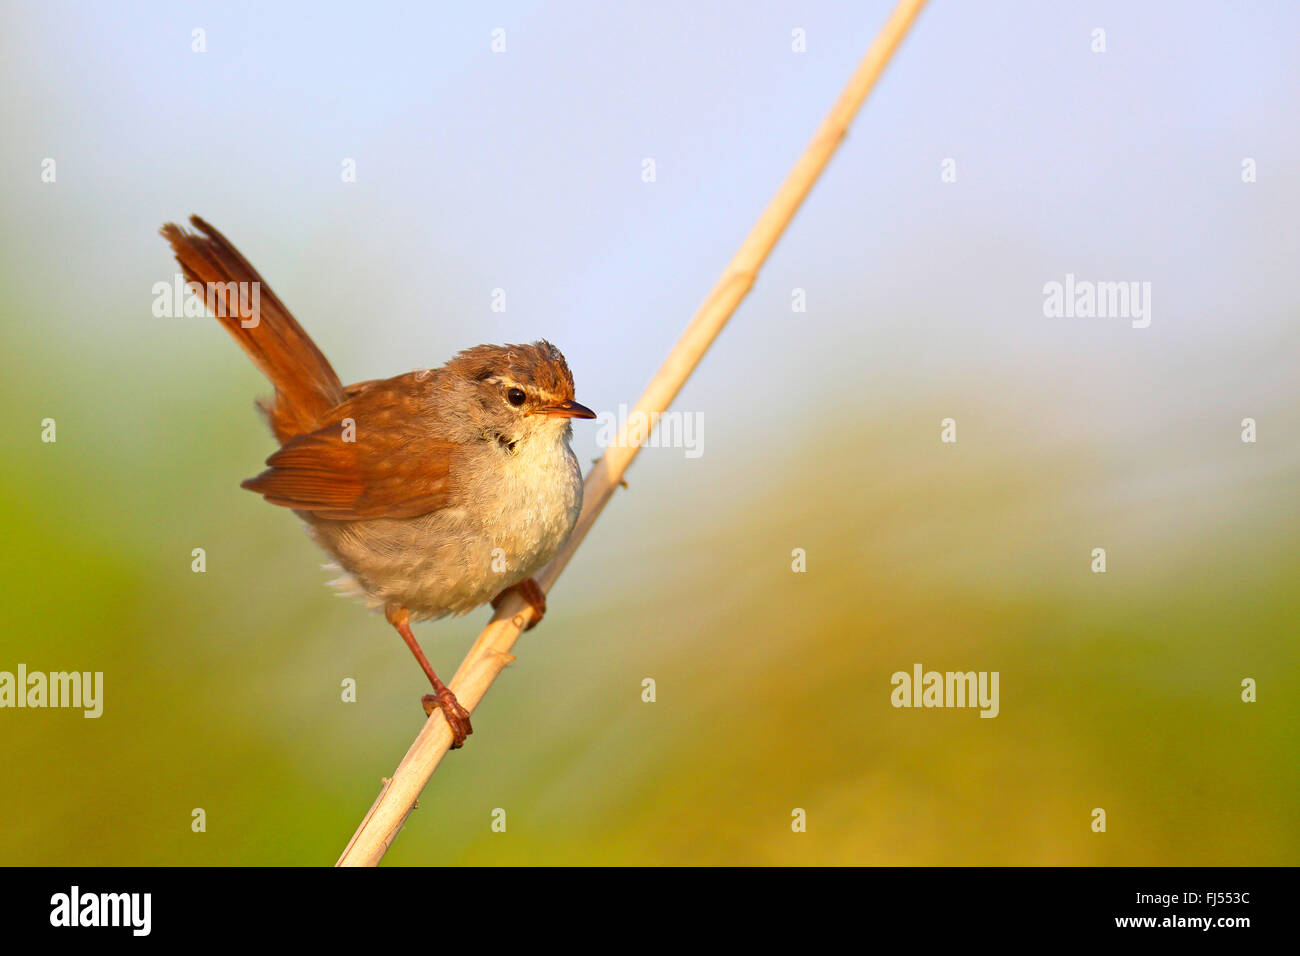 Cetti's warbler (Cettia cetti), sitting on a reed stem, Greece, Evrosdelta - Stock Image